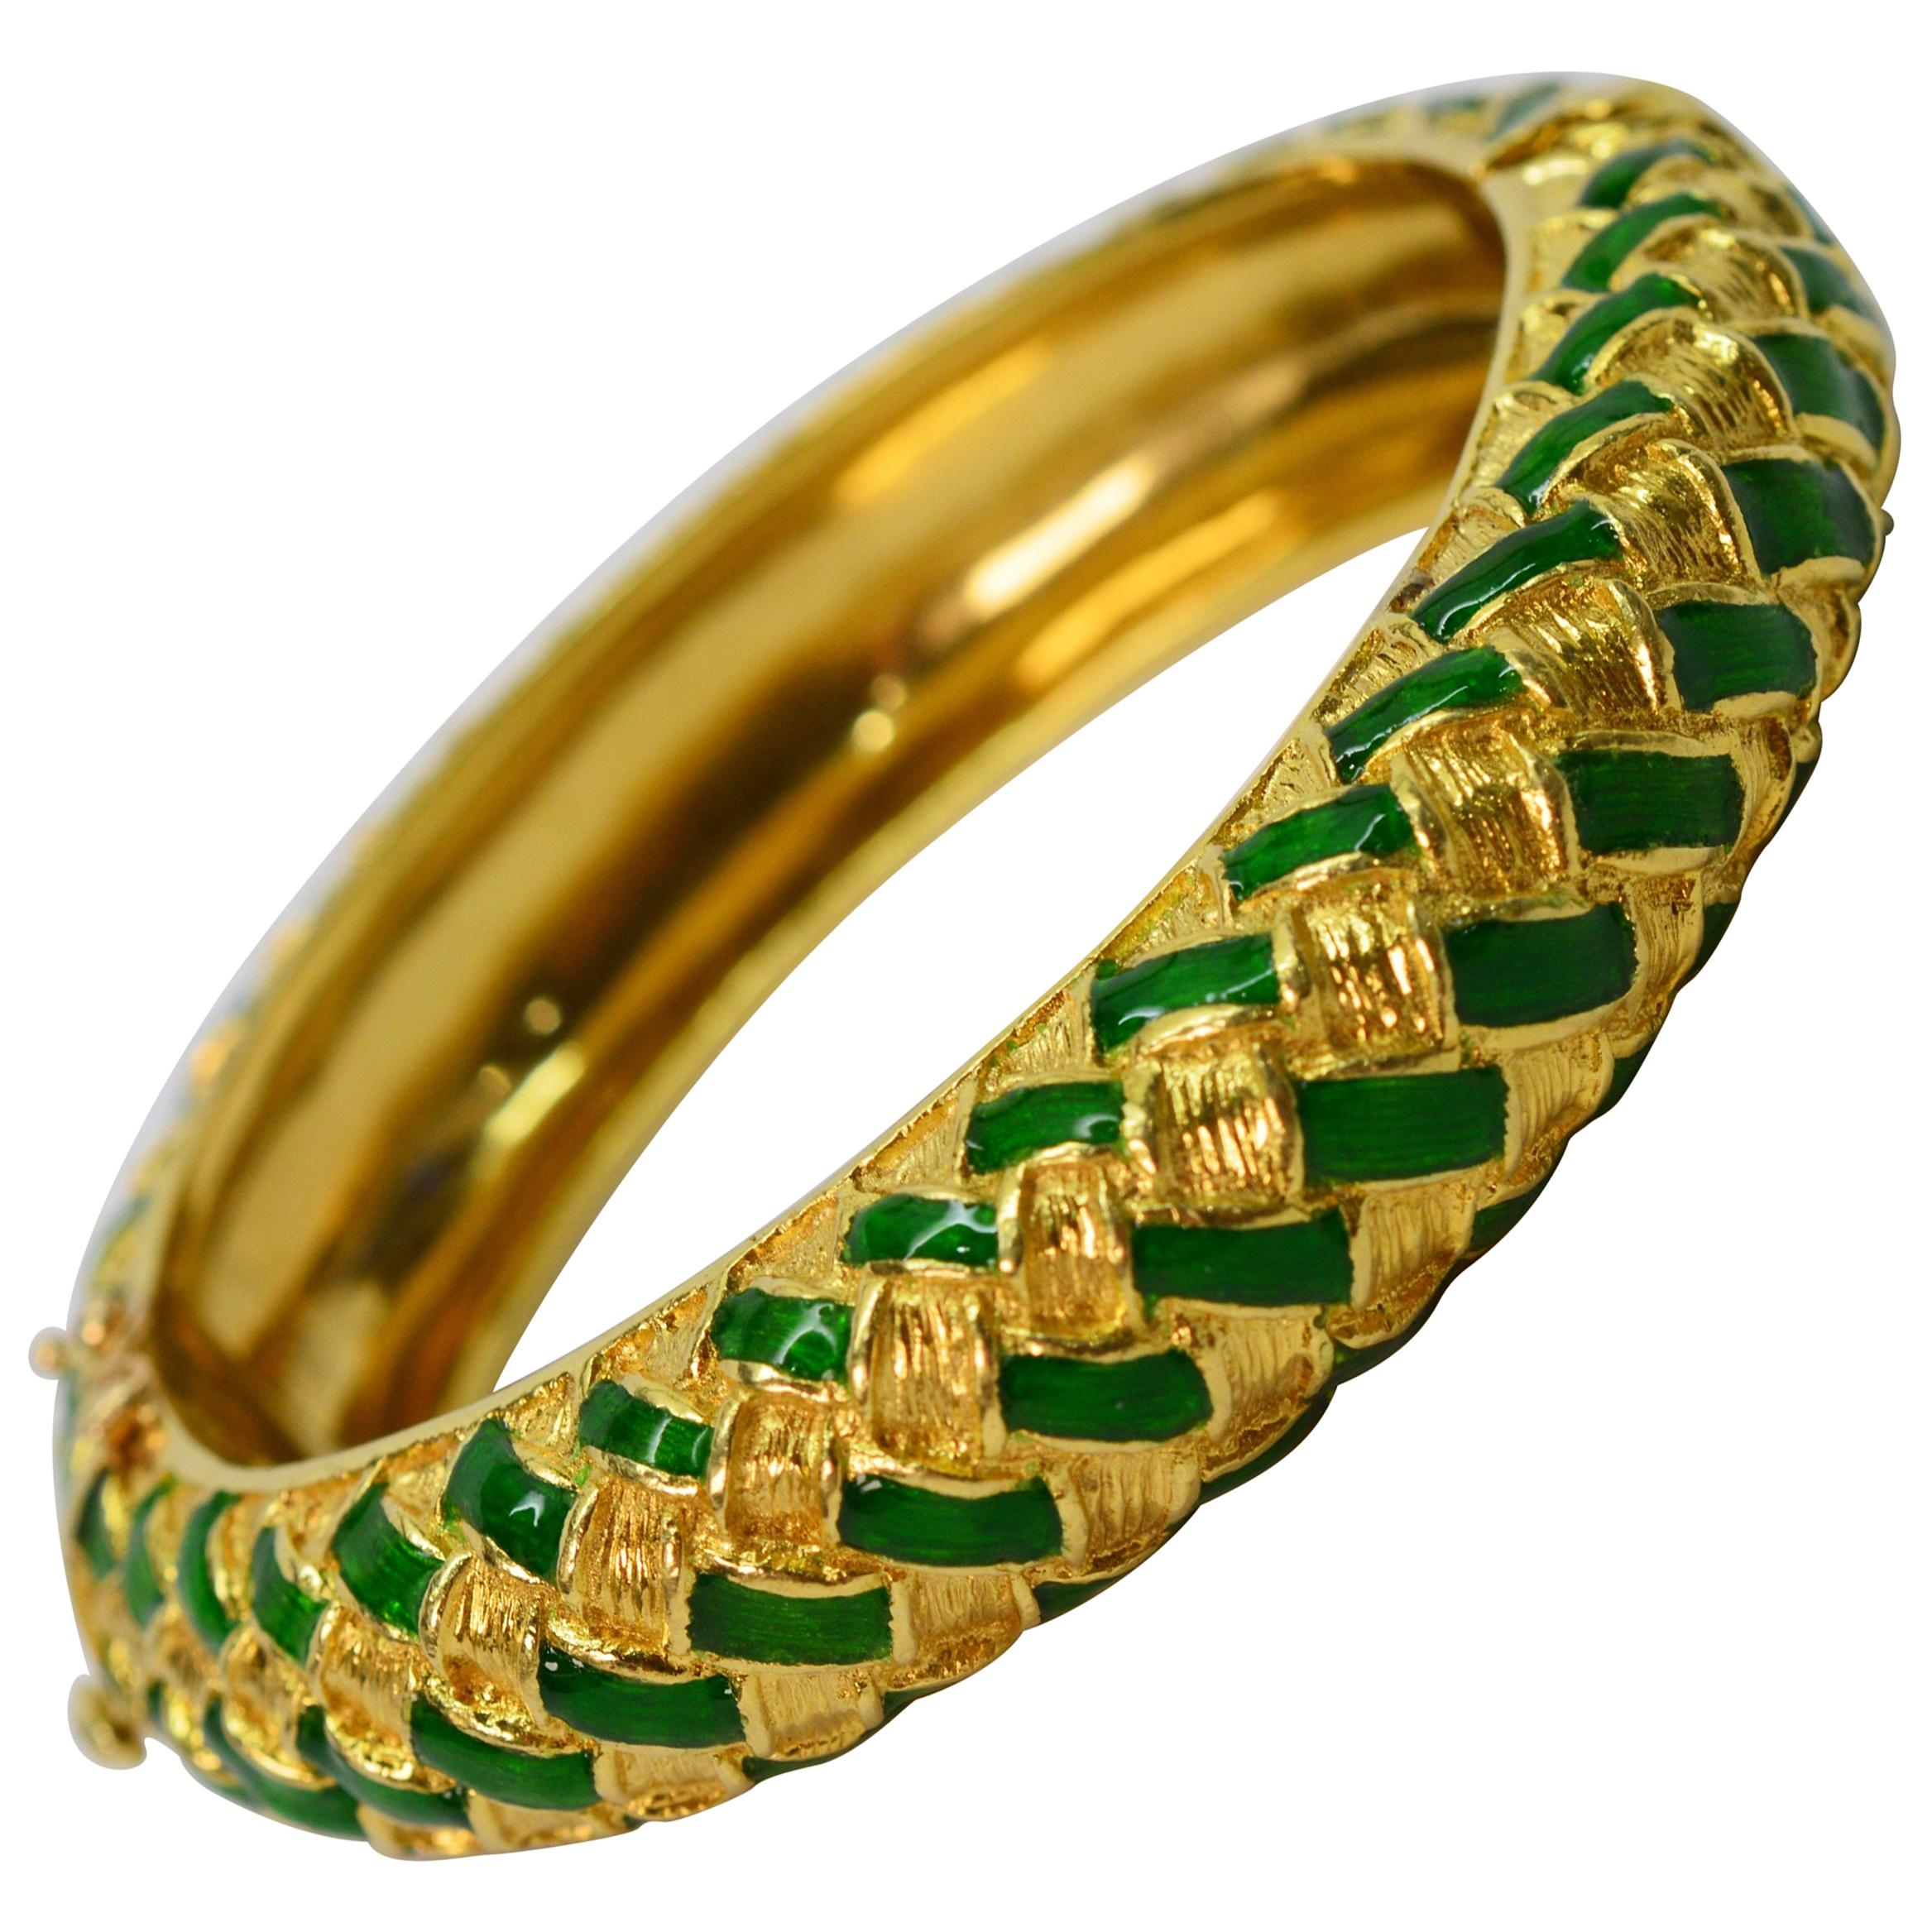 Tiffany & Co. Green Enamel Yellow Gold Basket Weave Bangle Bracelet